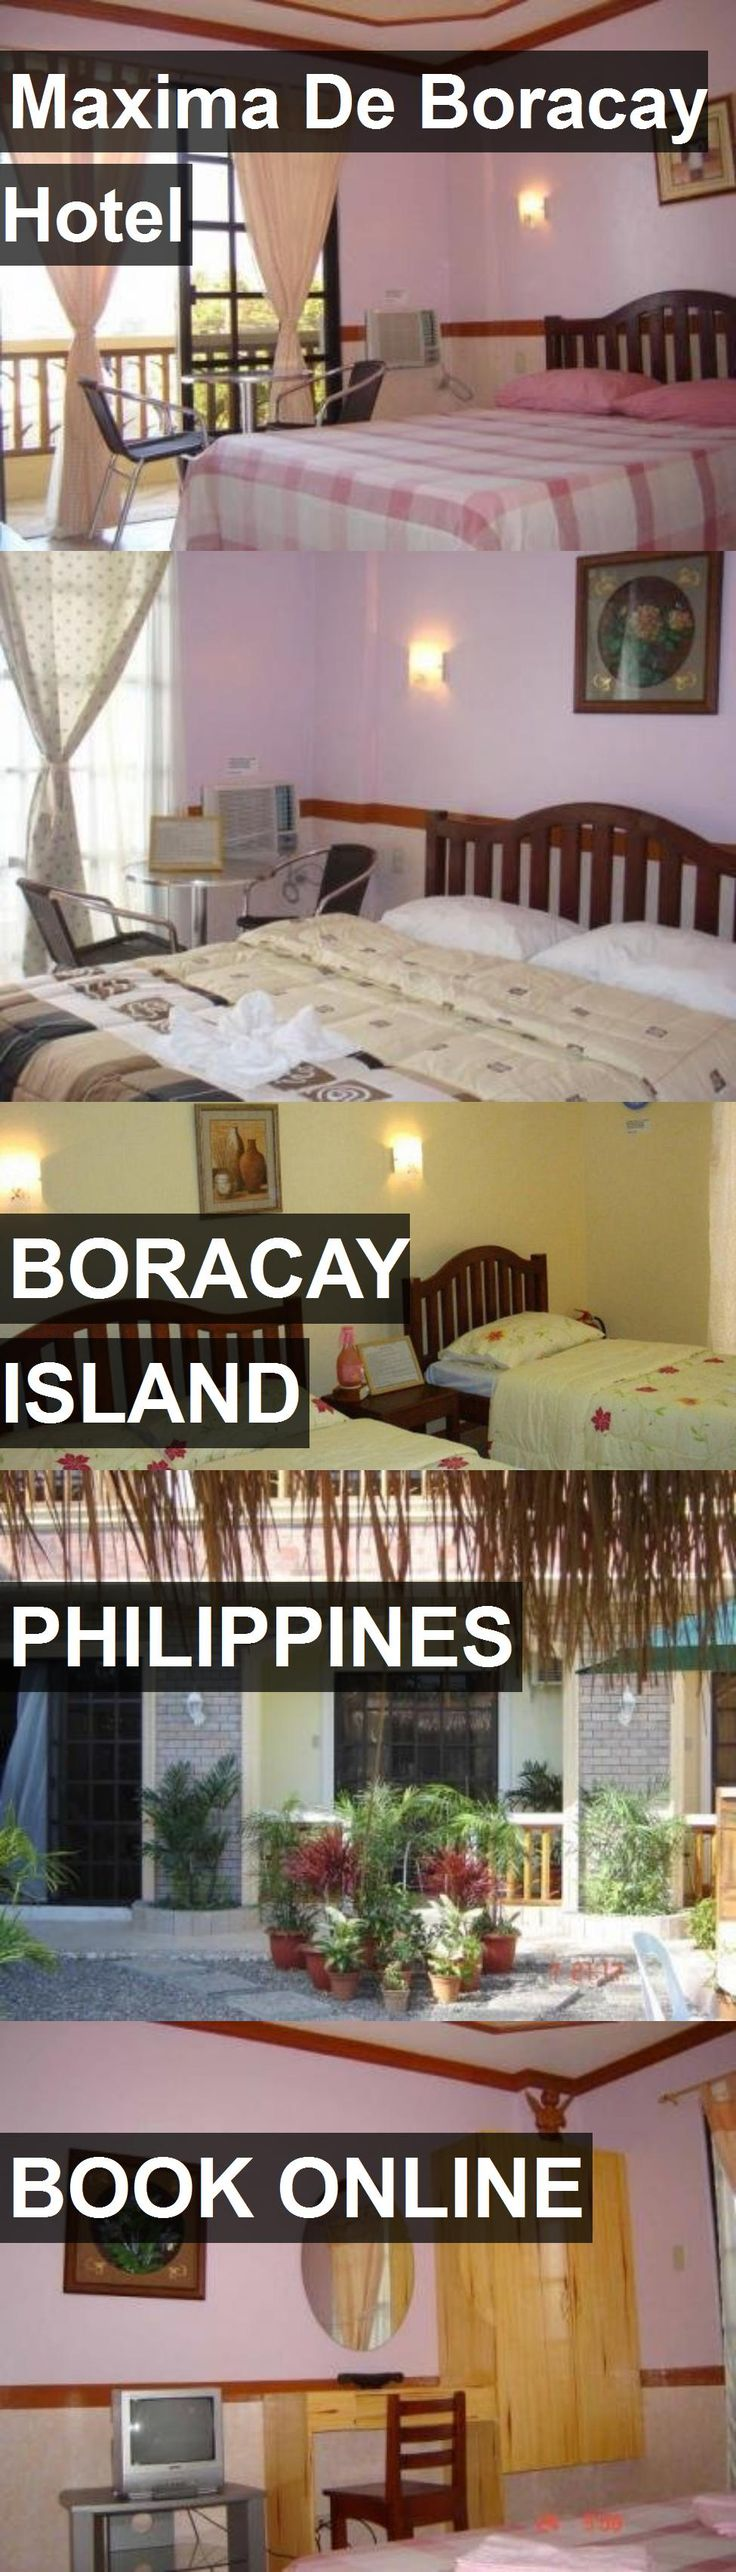 Hotel Maxima De Boracay Hotel in Boracay Island, Philippines. For more information, photos, reviews and best prices please follow the link. #Philippines #BoracayIsland #MaximaDeBoracayHotel #hotel #travel #vacation